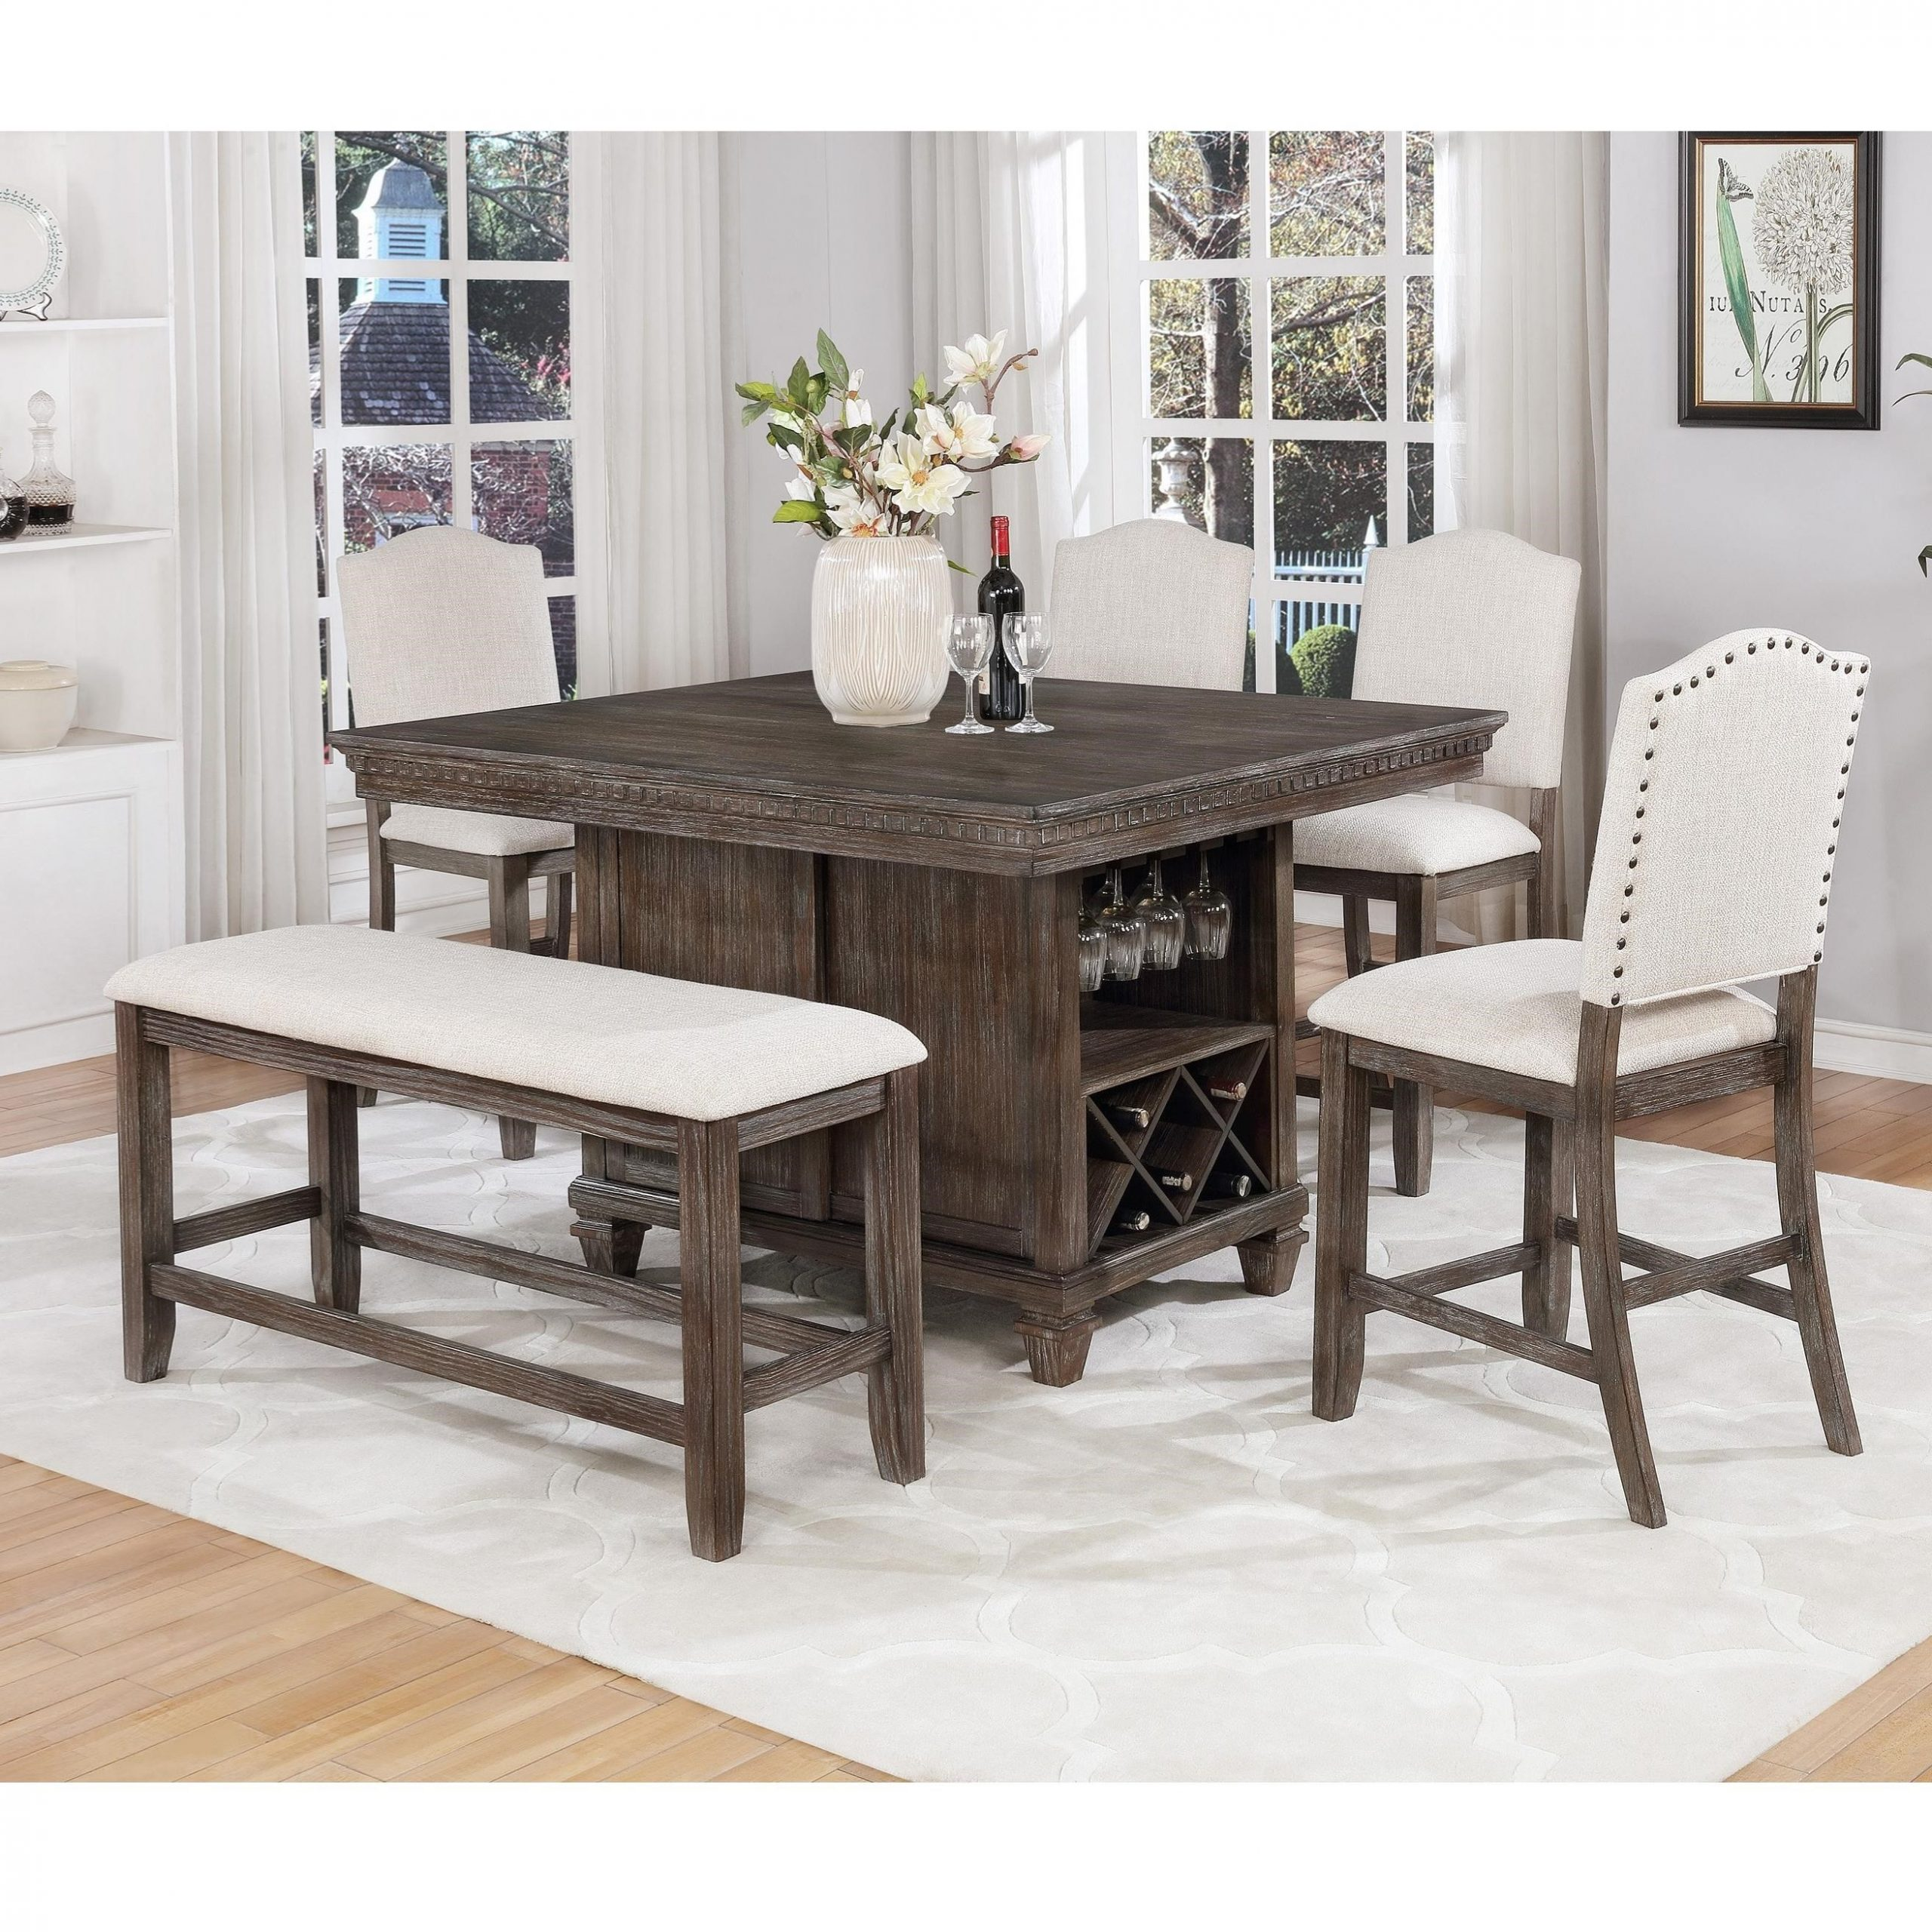 Well Liked Avondale Counter Height Dining Tables Throughout Regent 6 Piece Counter Height Dining Setdel Sol Cm At Del Sol Furniture (View 12 of 25)